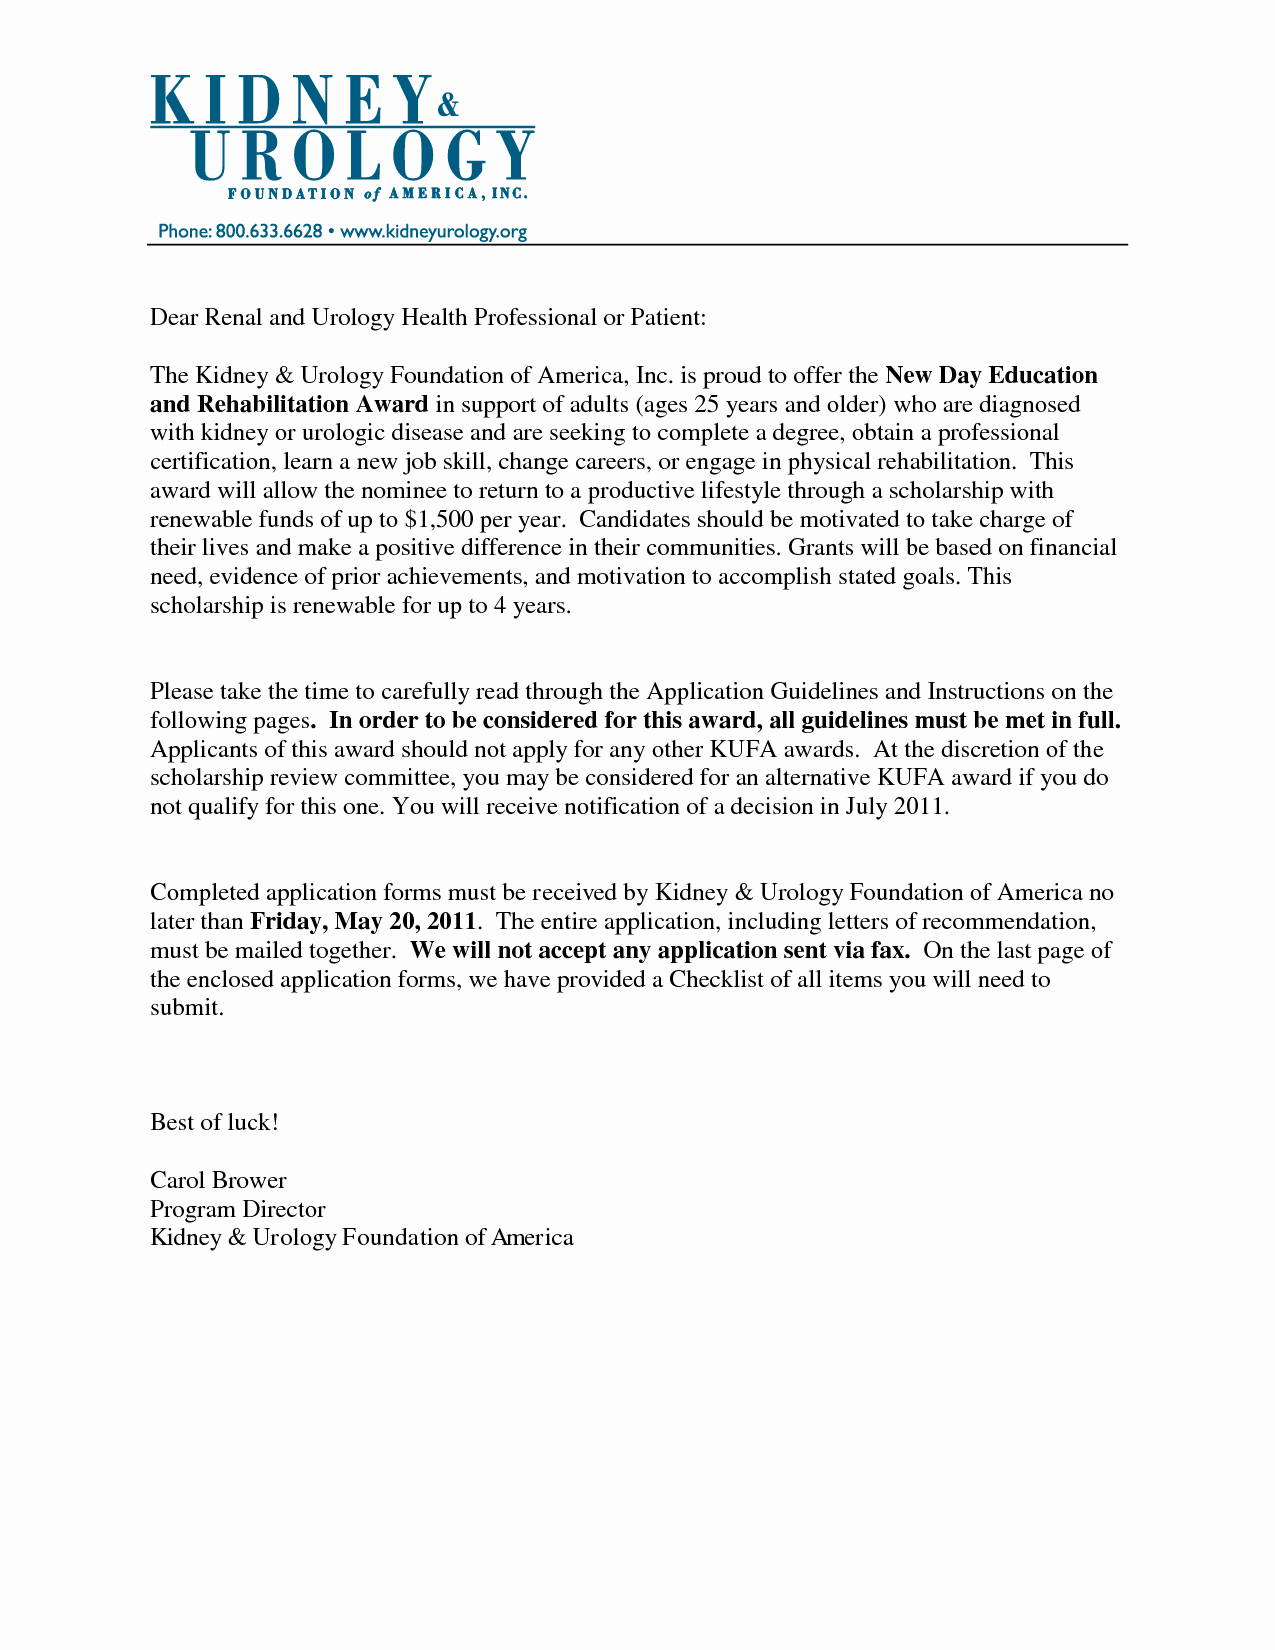 Reference Letter for Nursing School Best Of Reference Letters for Job Applicants